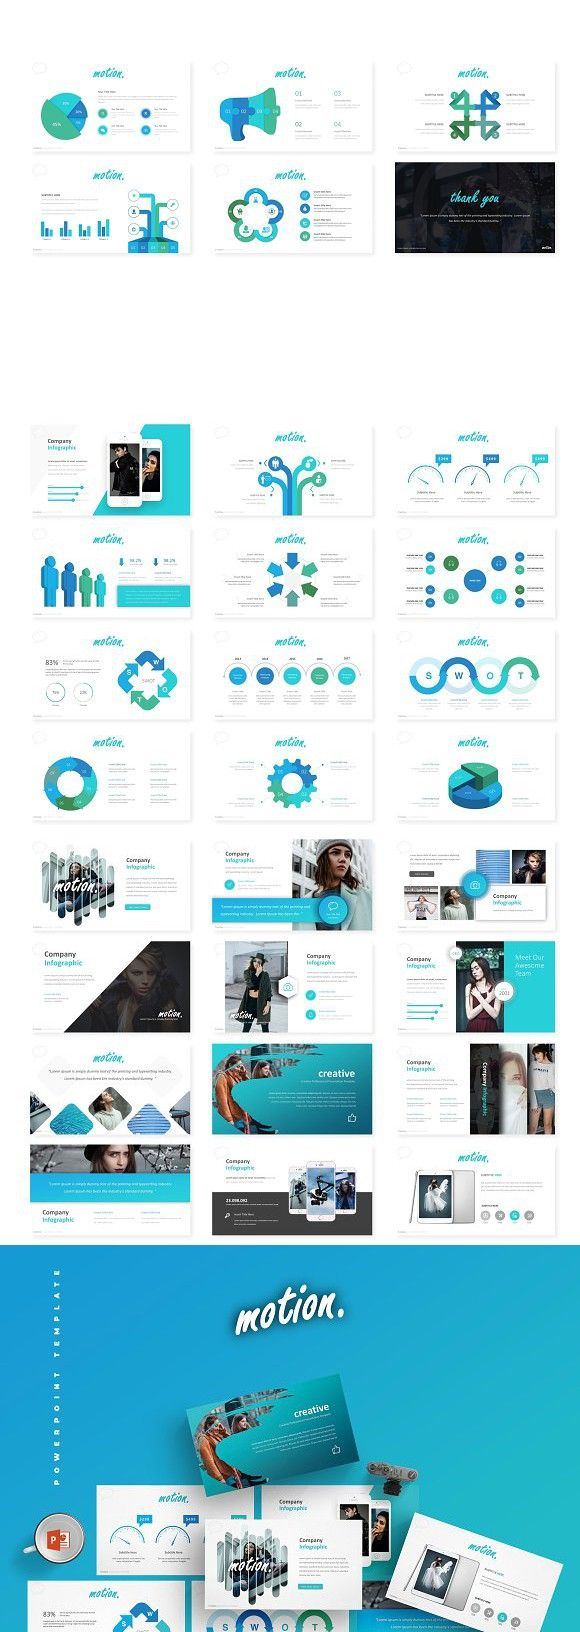 Motion Powerpoint Template Ppt Pinterest Template And